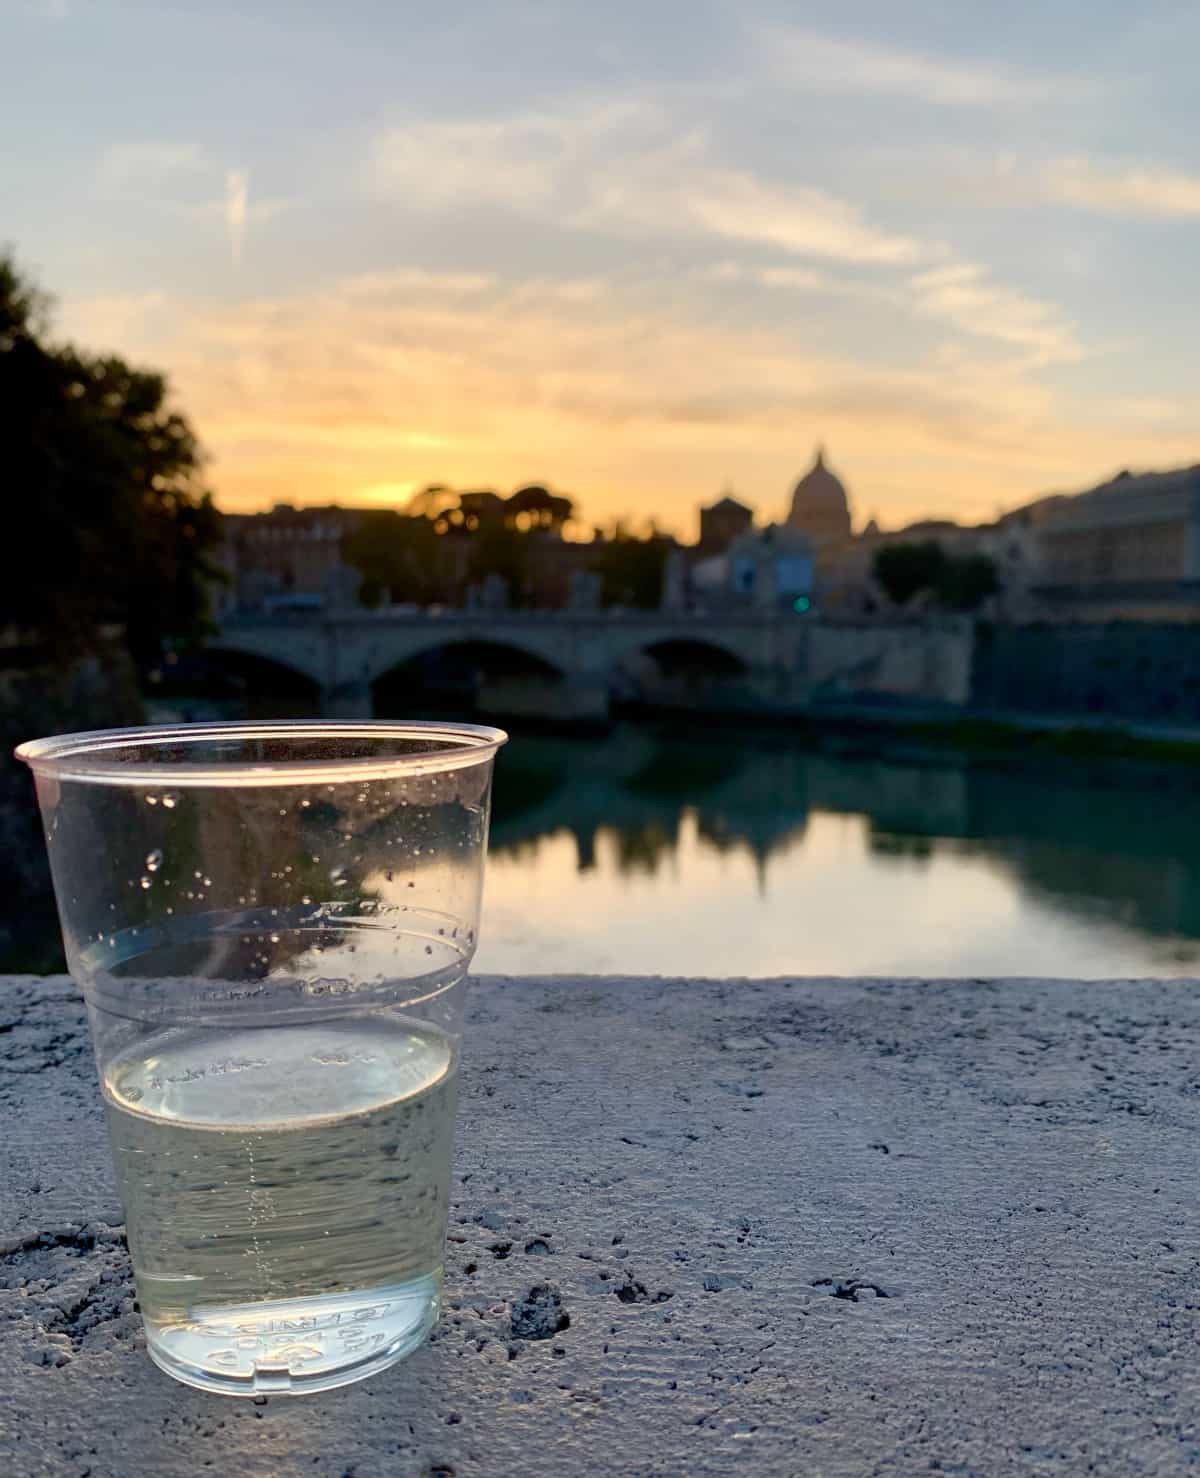 Catch a sunset at the Castel Sant'Angelo...the best photo spots in Rome